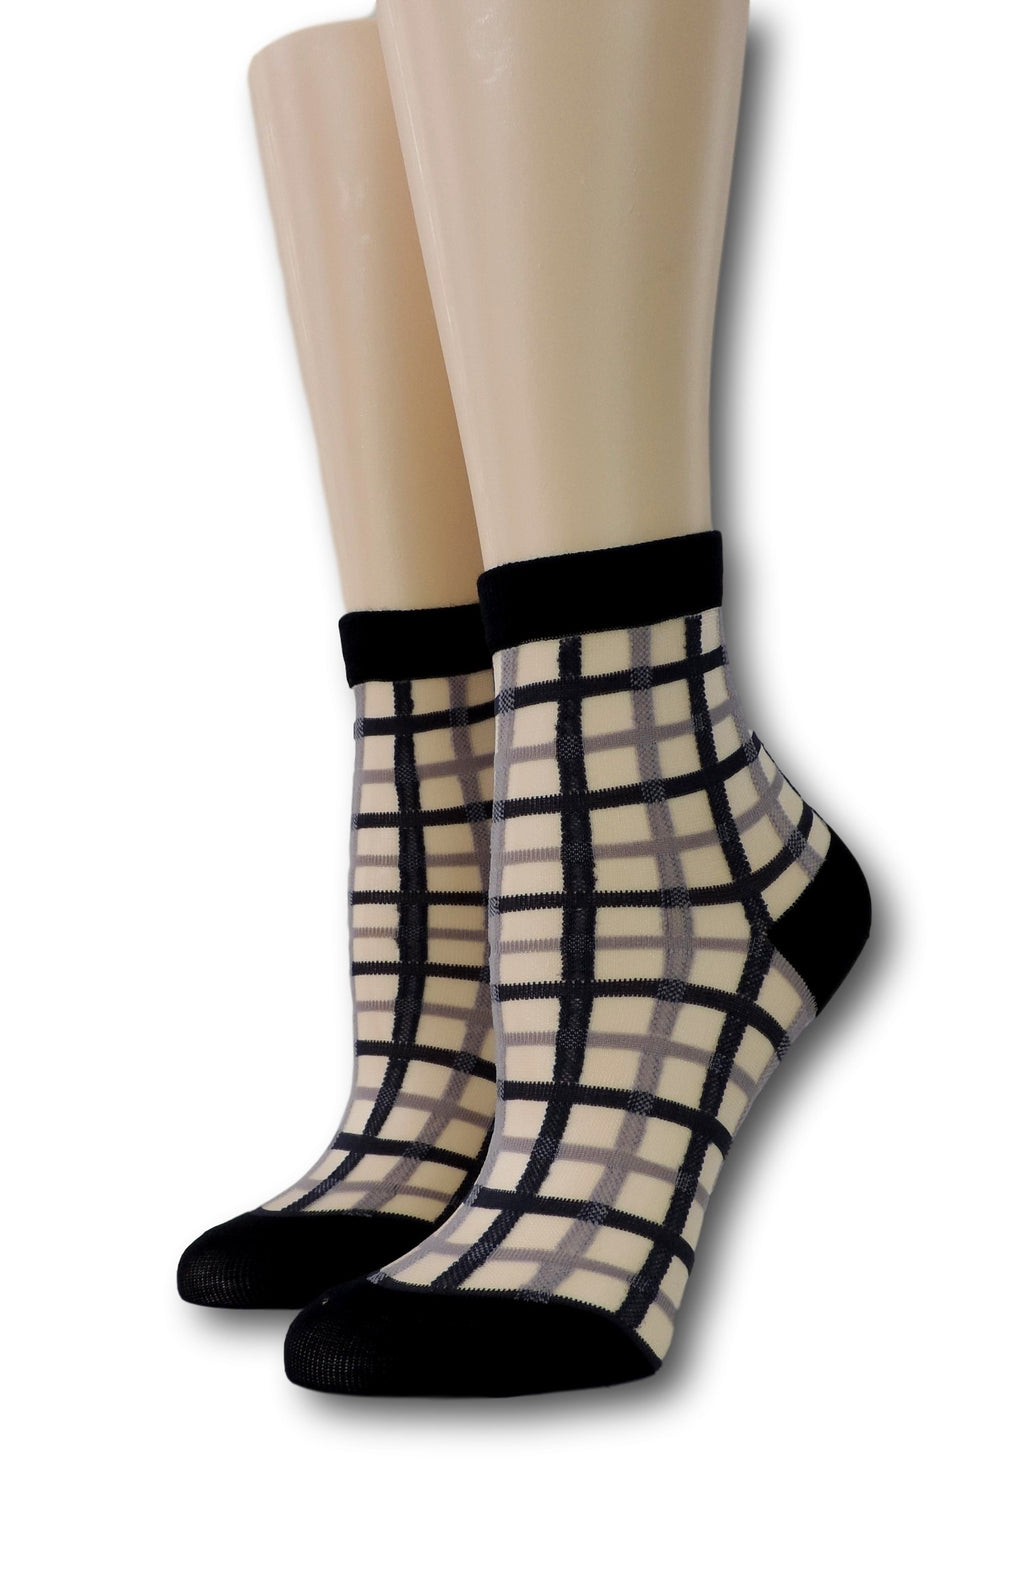 Black Vintage Sheer Socks